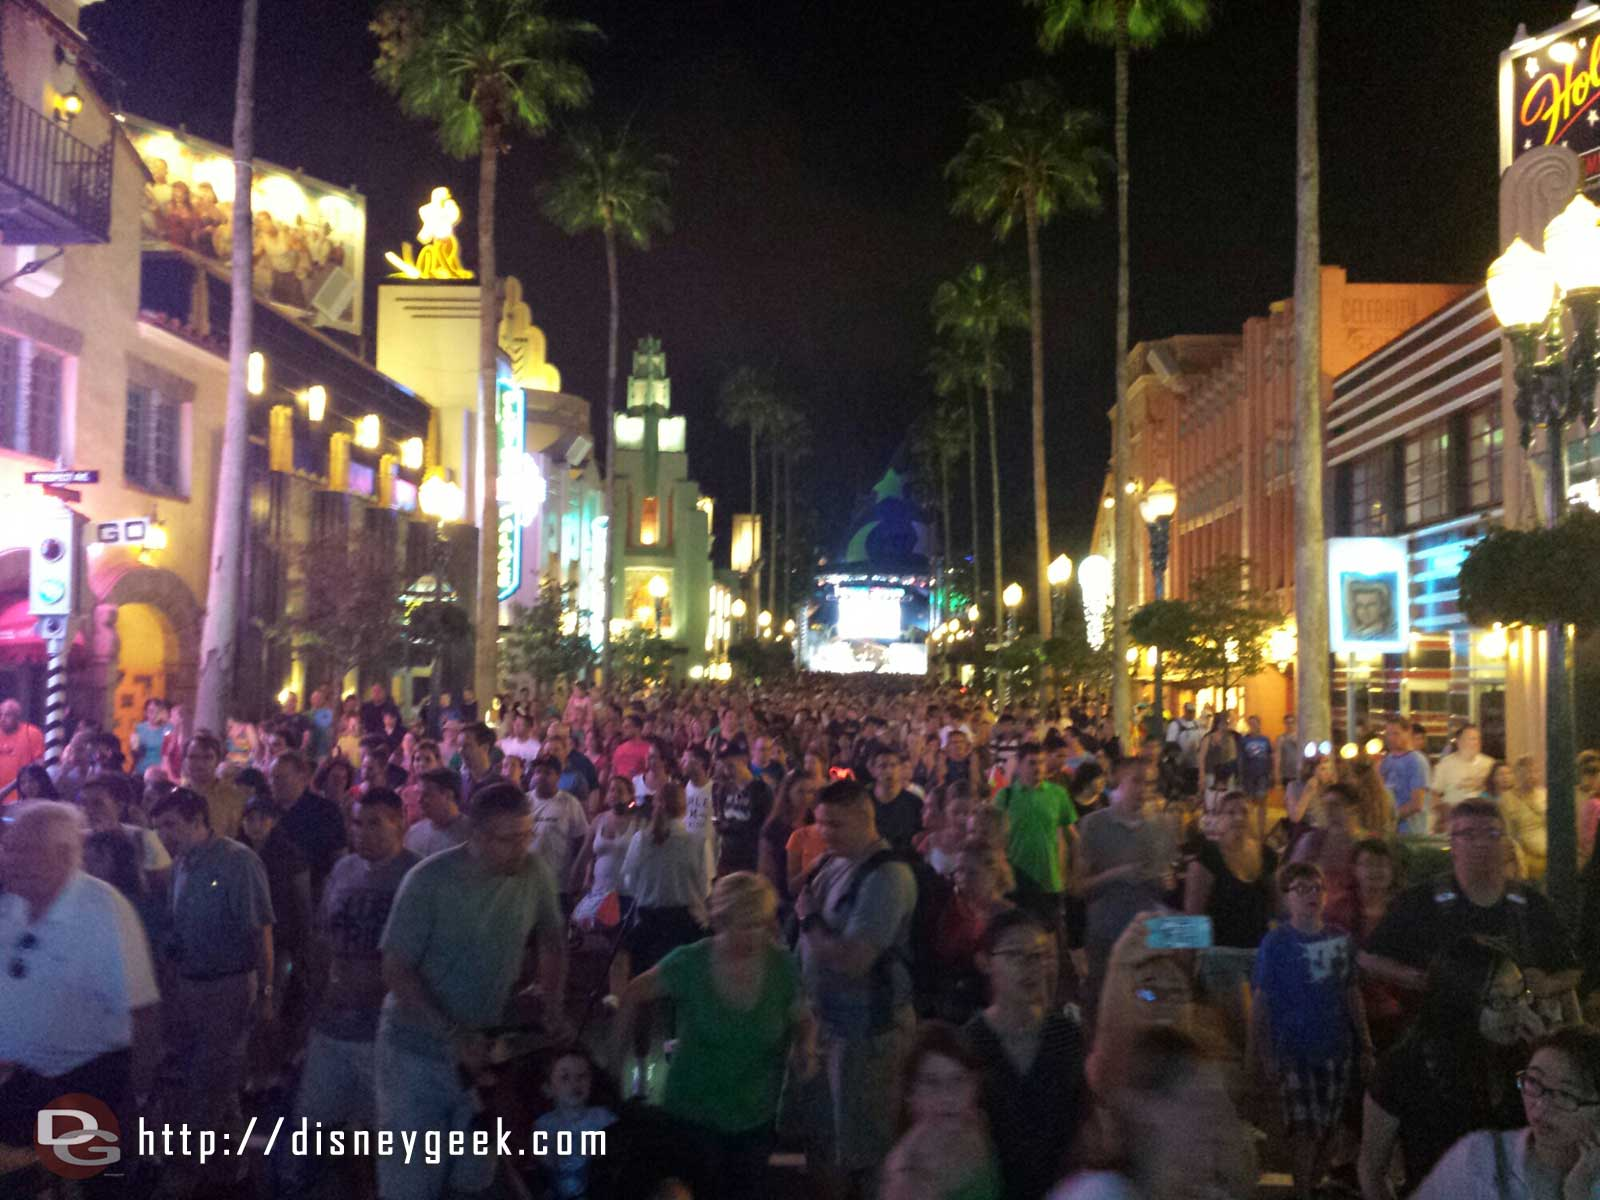 Hollywood Blvd after the fireworks – Disney's Hollywood Studios